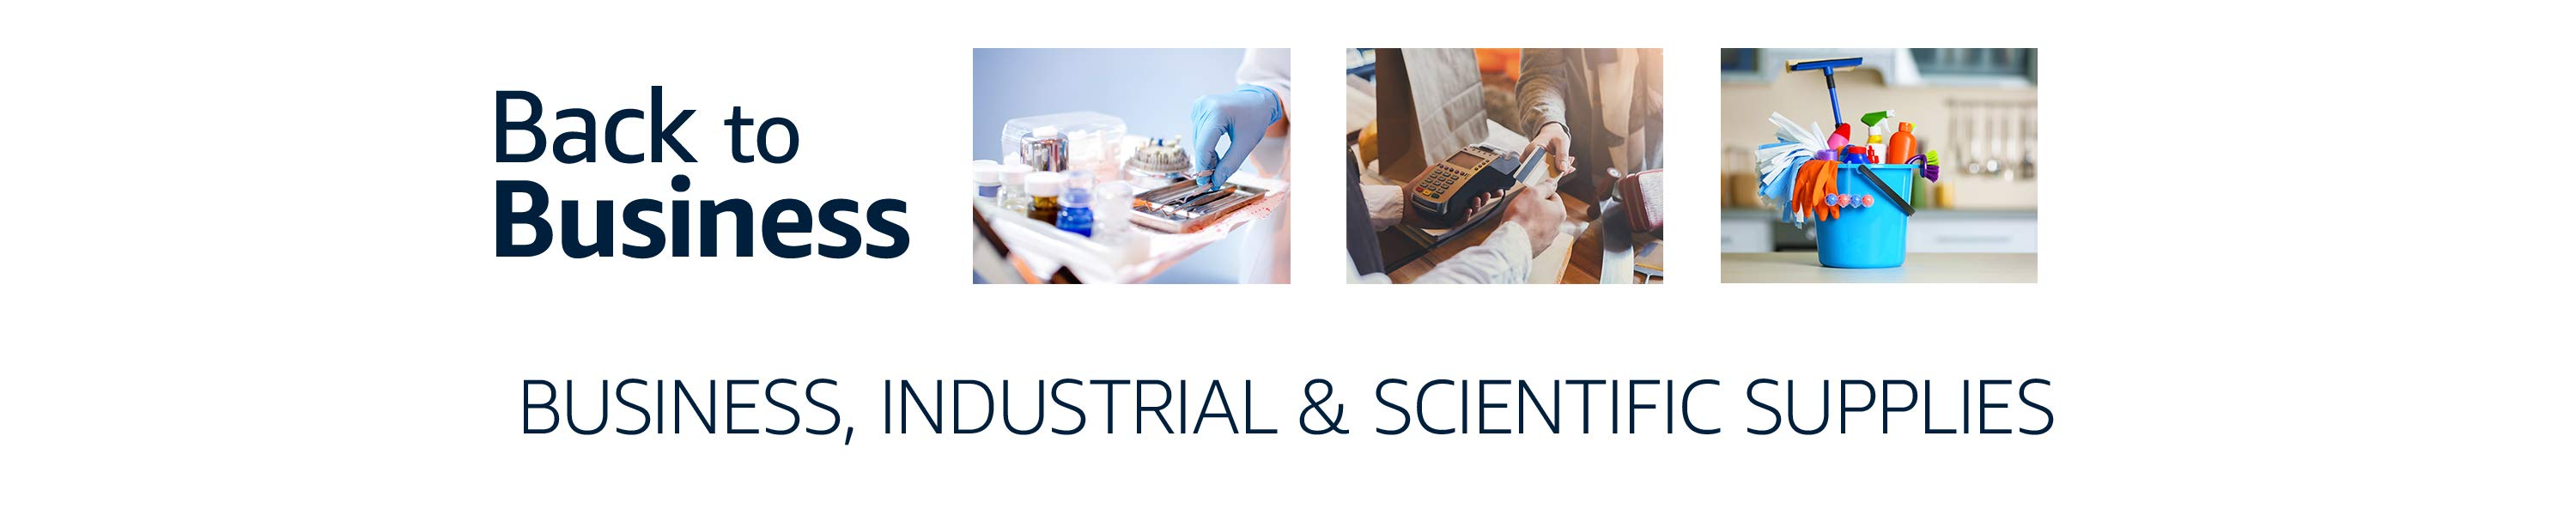 Back to Business | Business Industrial and Scientific Supplies